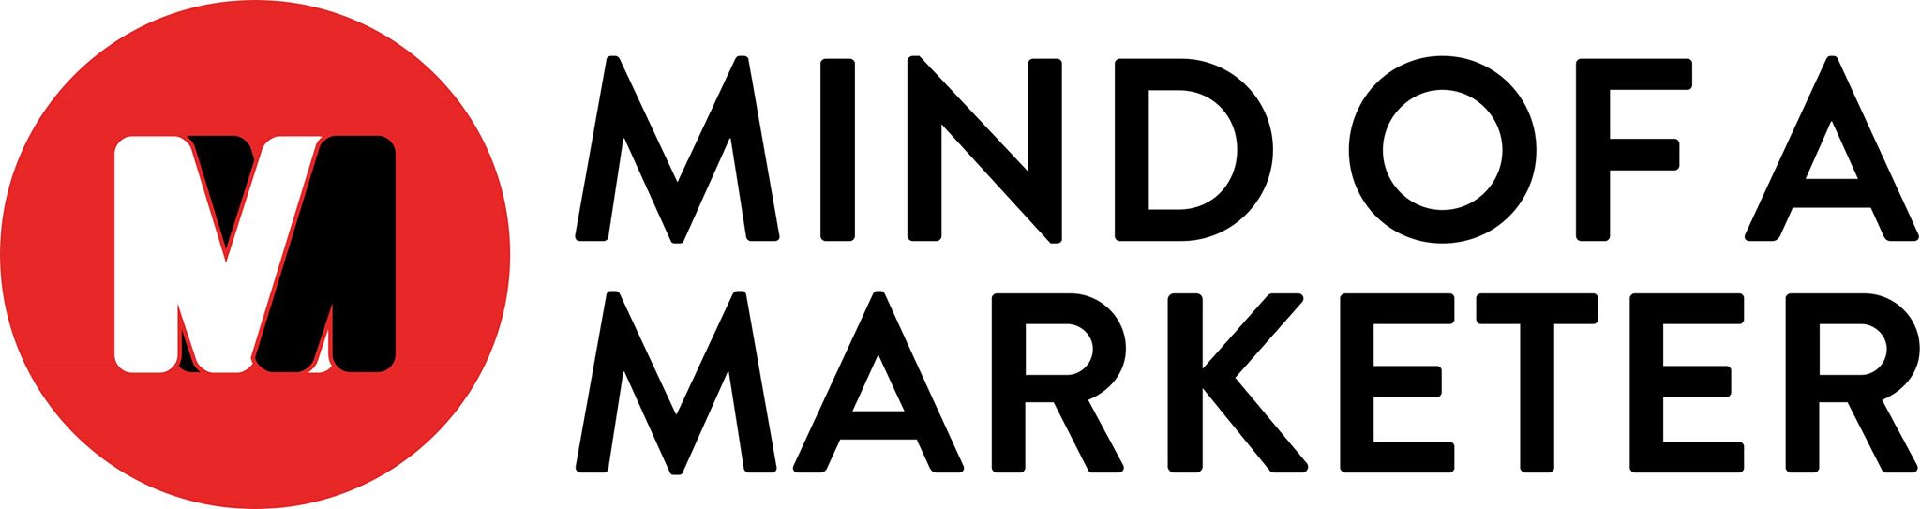 Mind of a Marketer